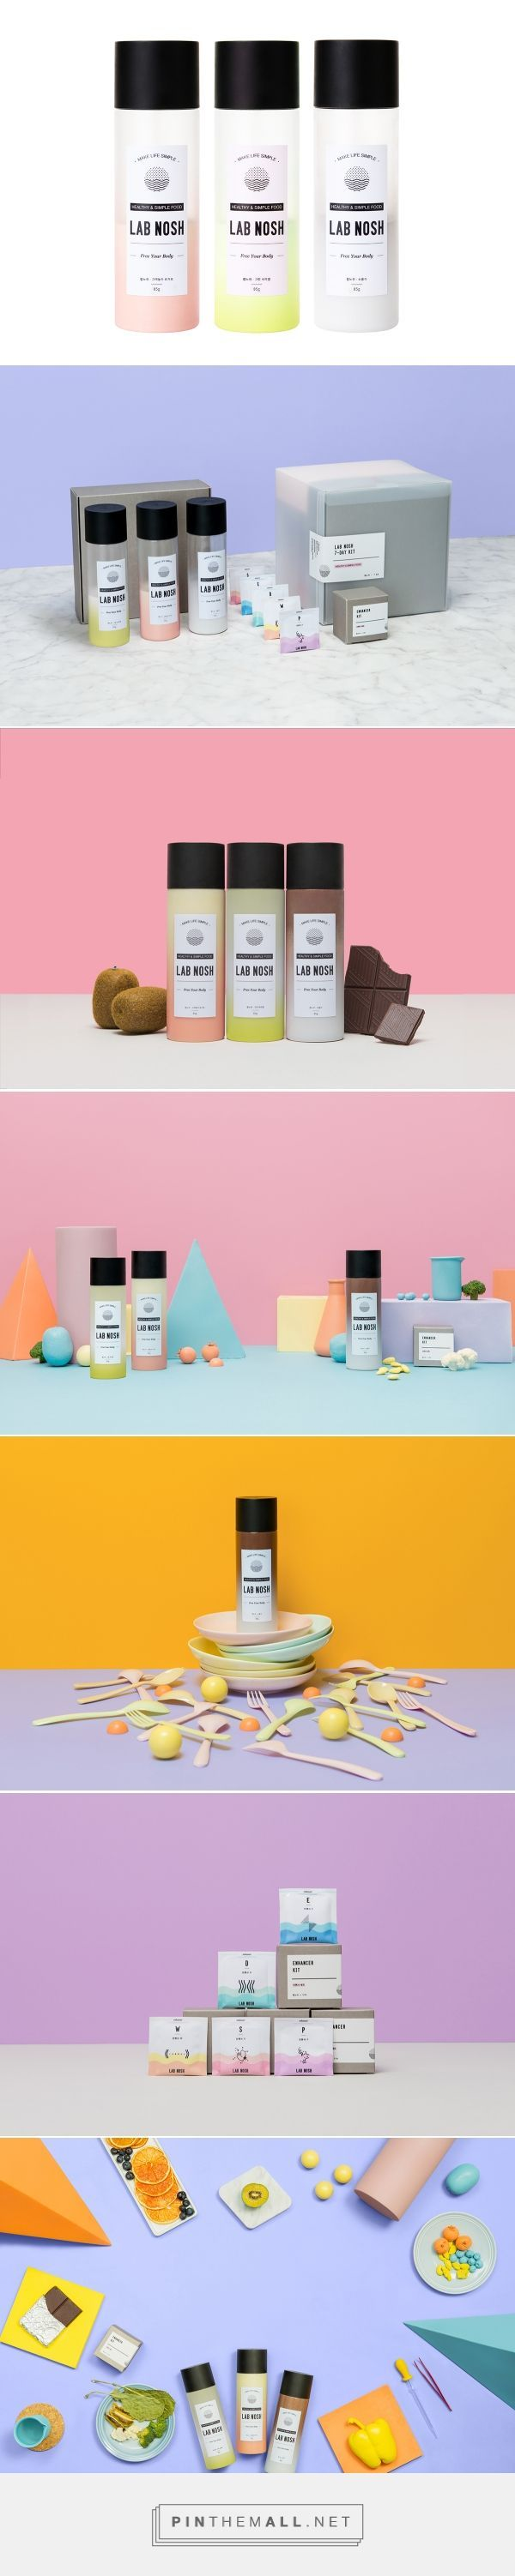 Branding and packaging for LAB NOSH on Behance by Min Li Seoul, Korea curated by…